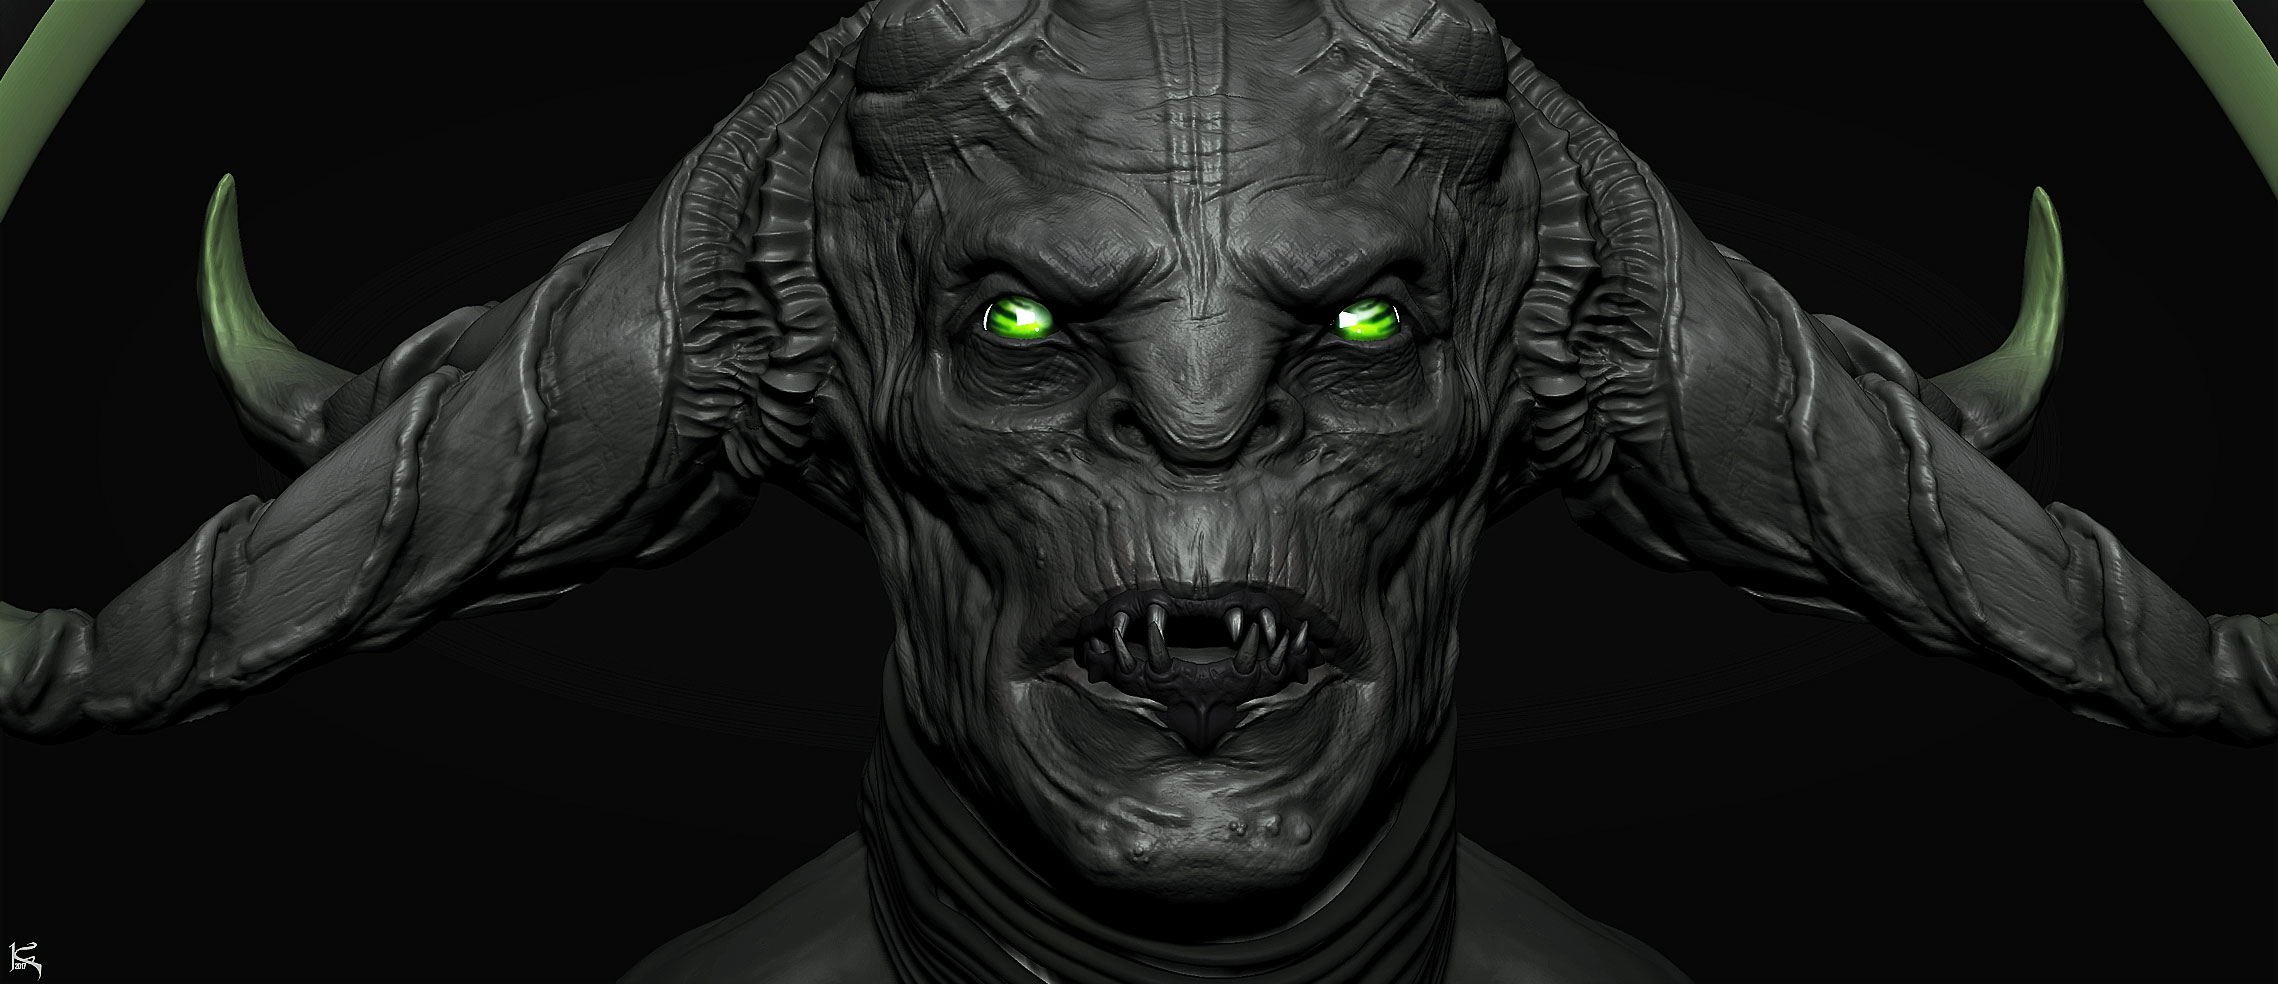 creature46_zbrush_screengrab_1002.jpg